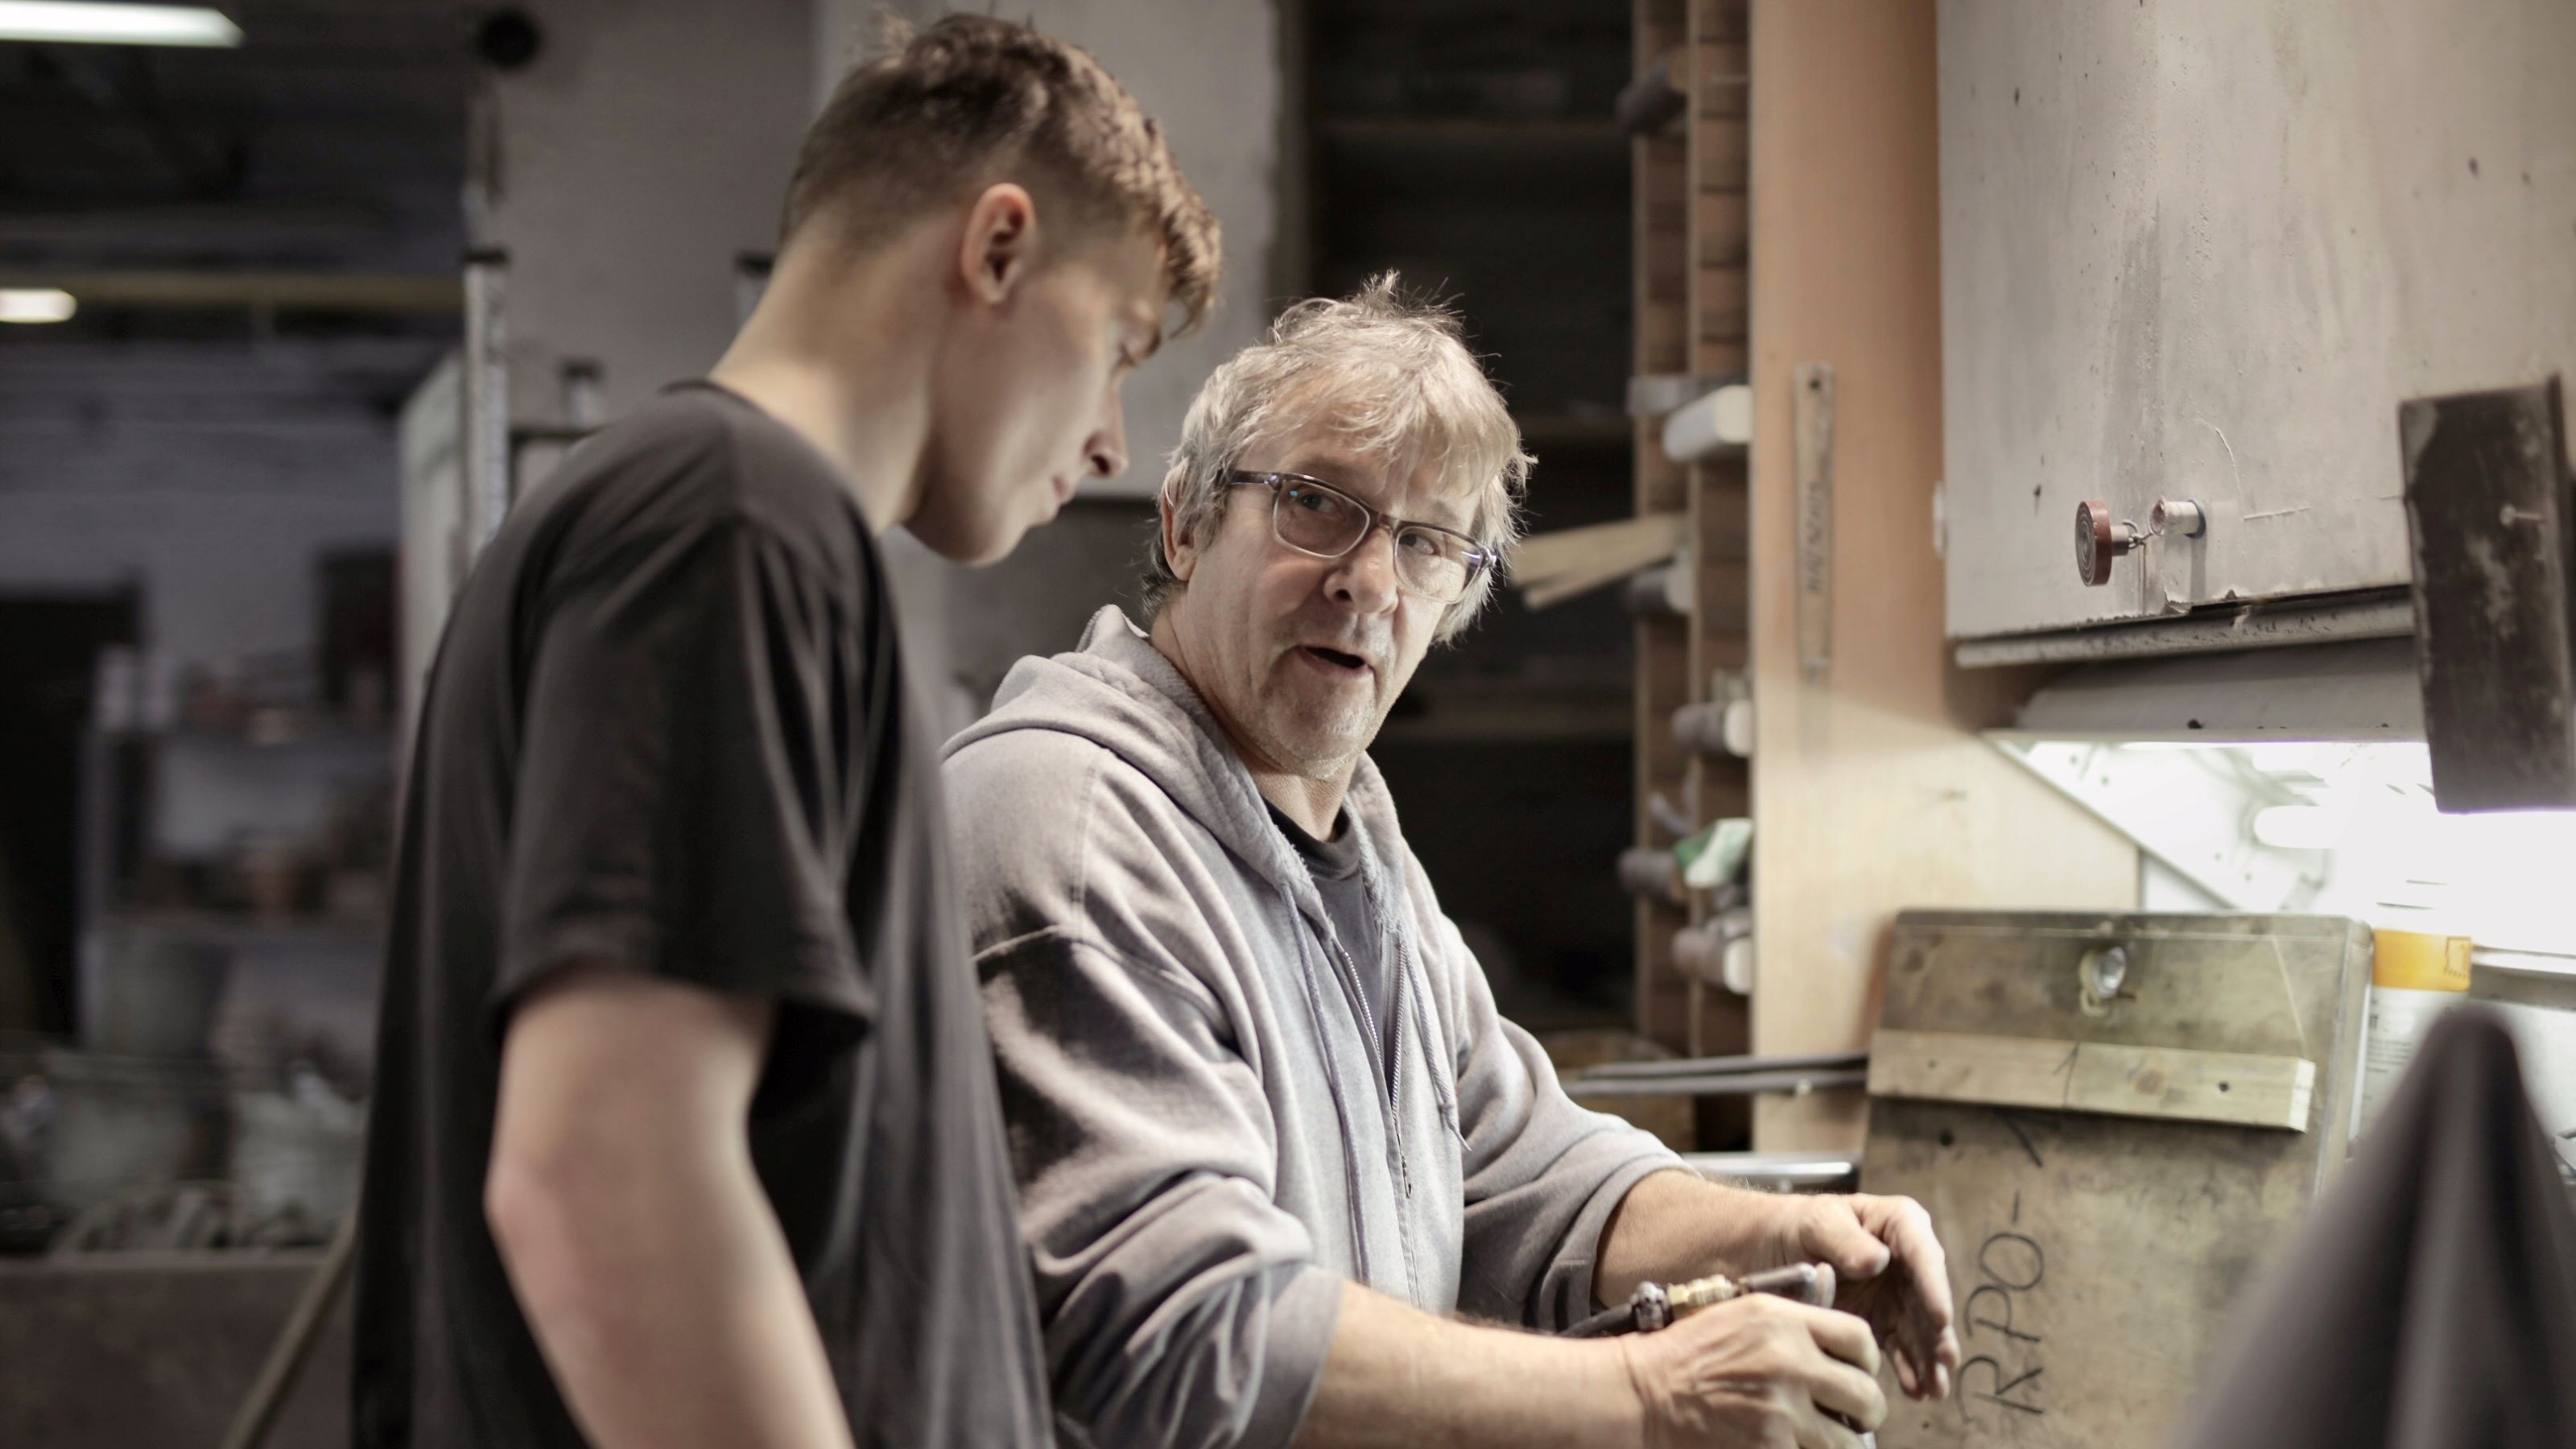 Two workers in discussion by pneumatic tool in workshop.